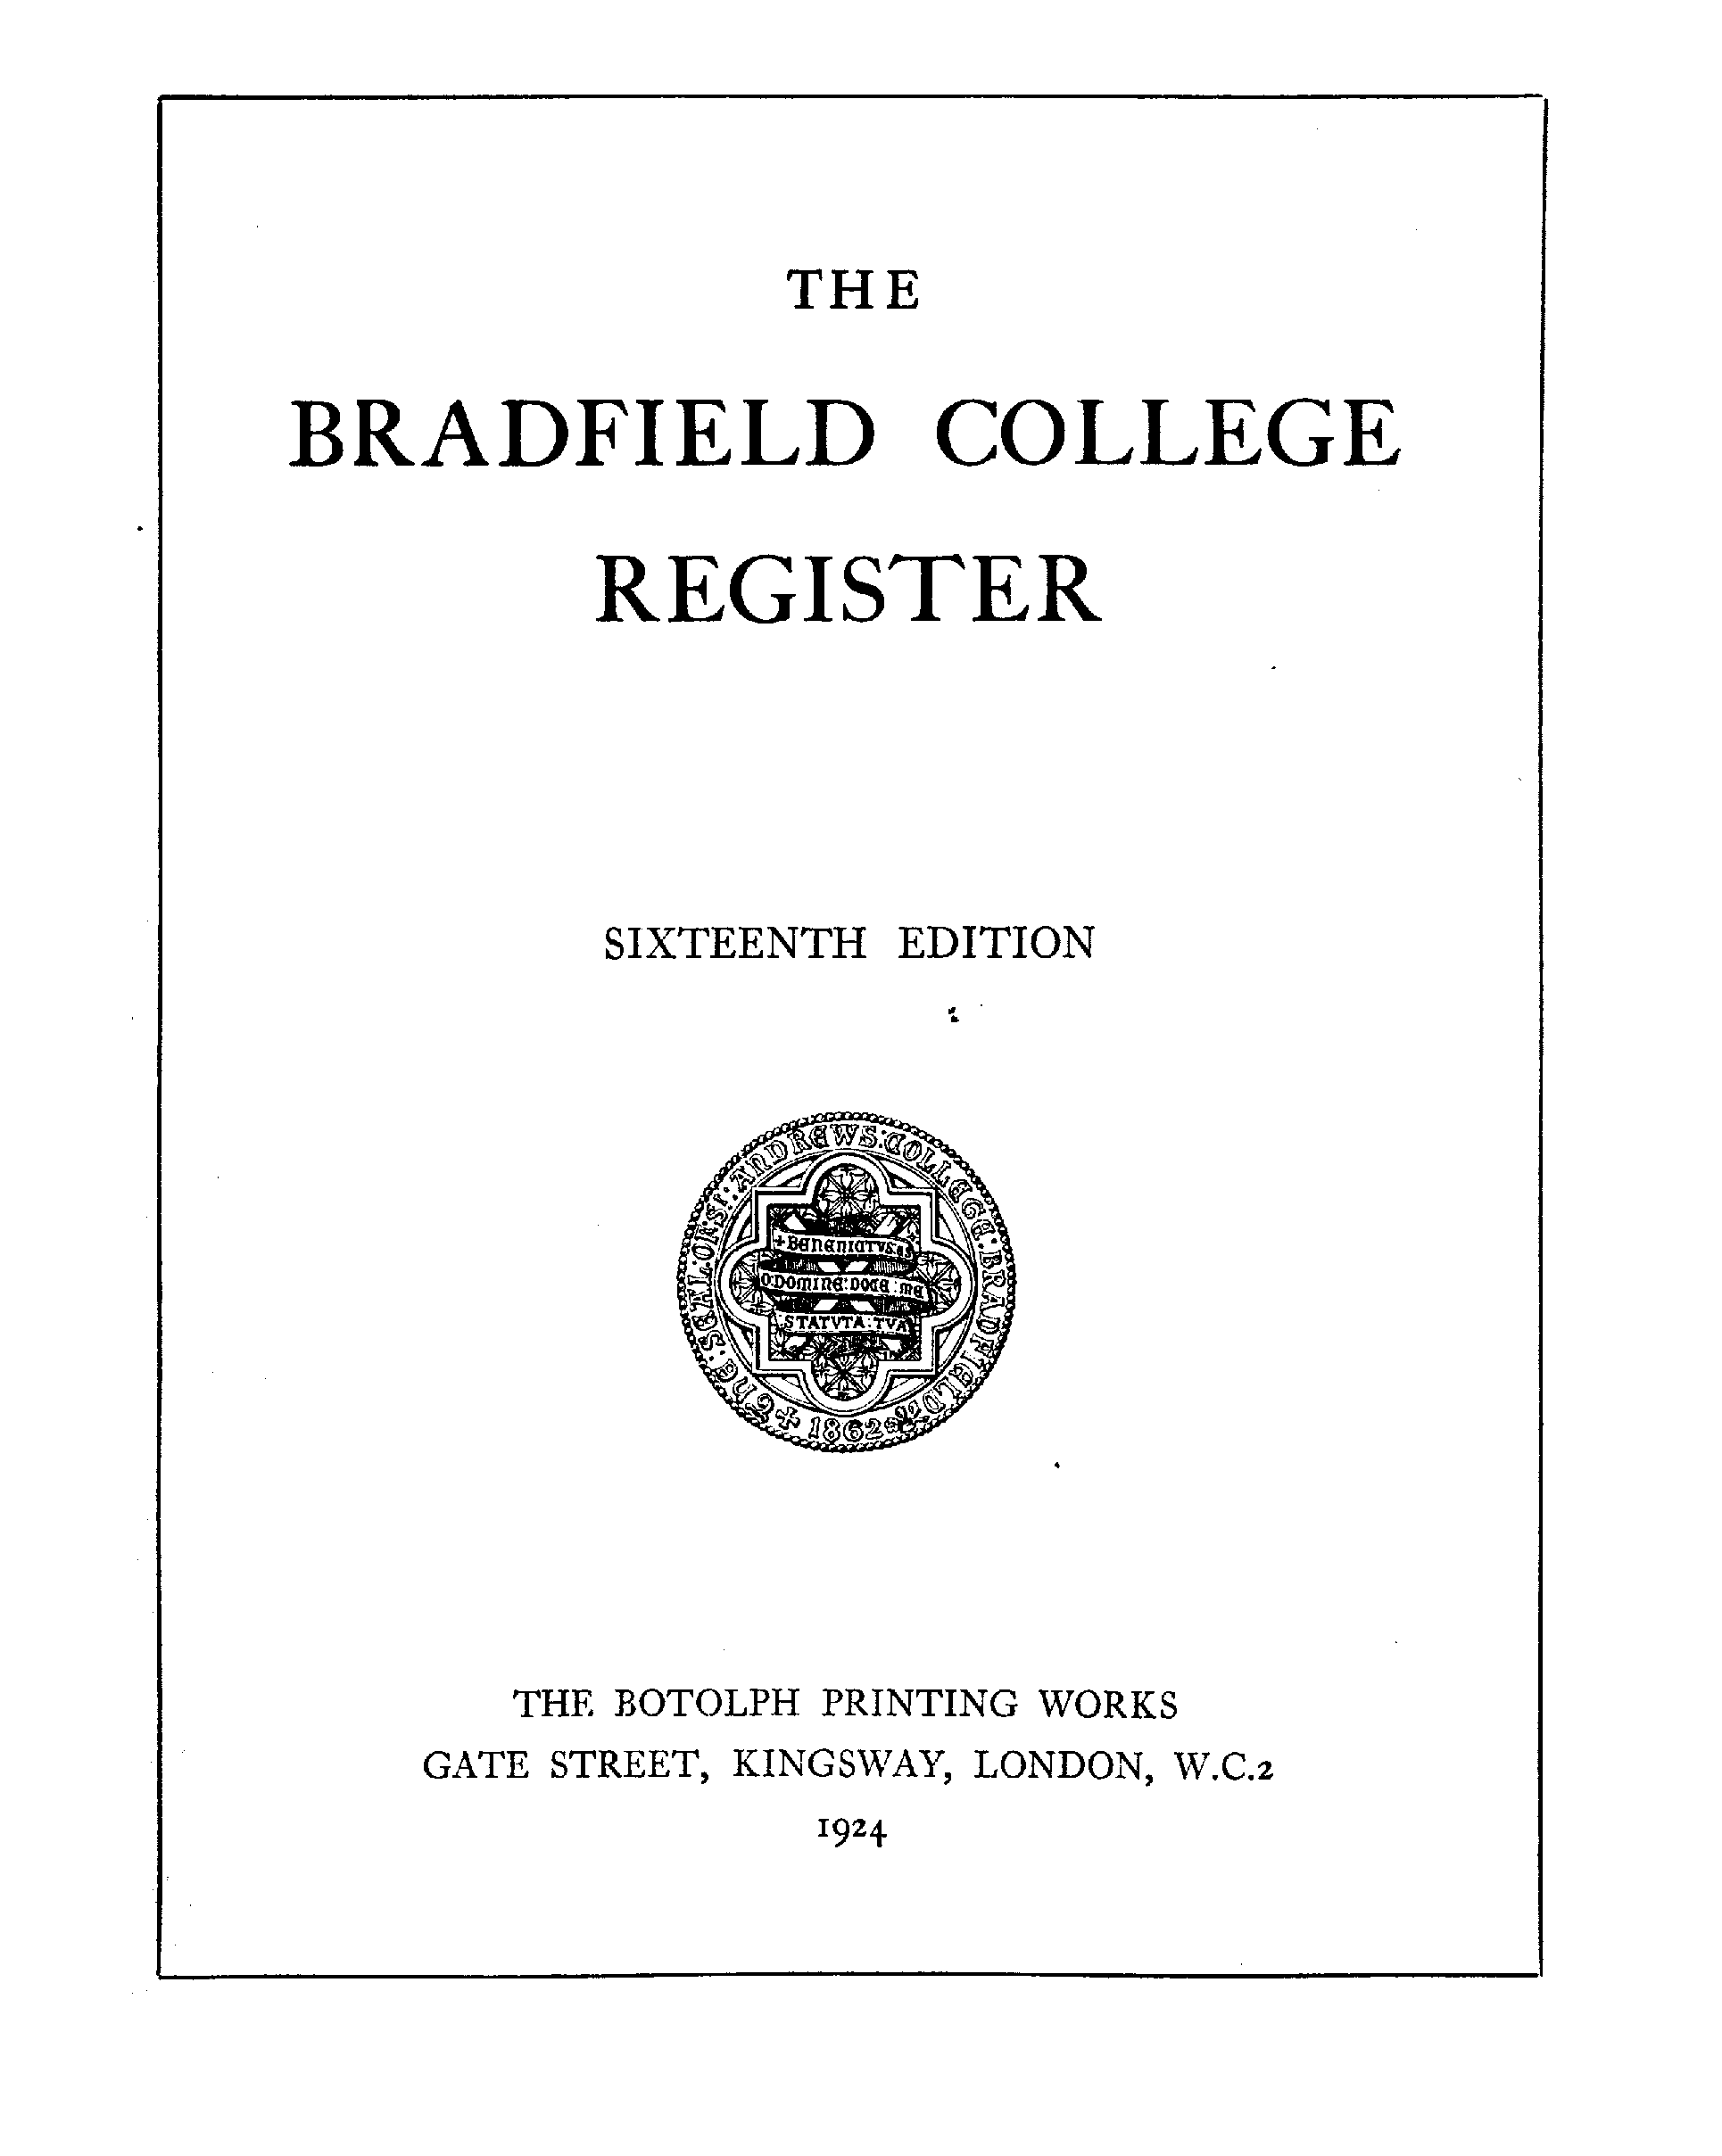 Bradfield College Register, 1850-1923 page 1 - click to open larger version in a new window